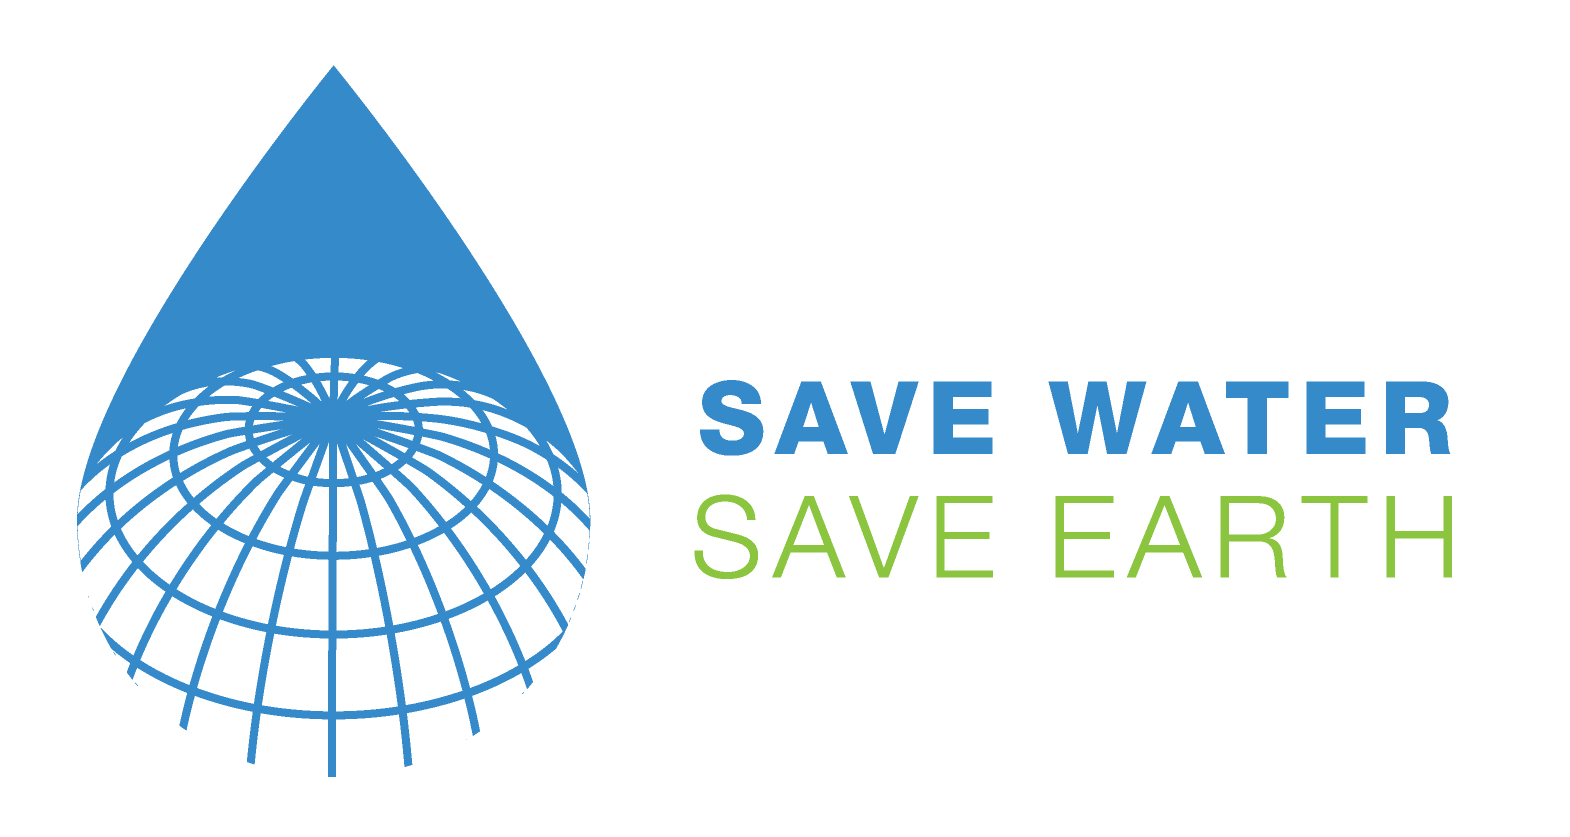 Save water, filtered water